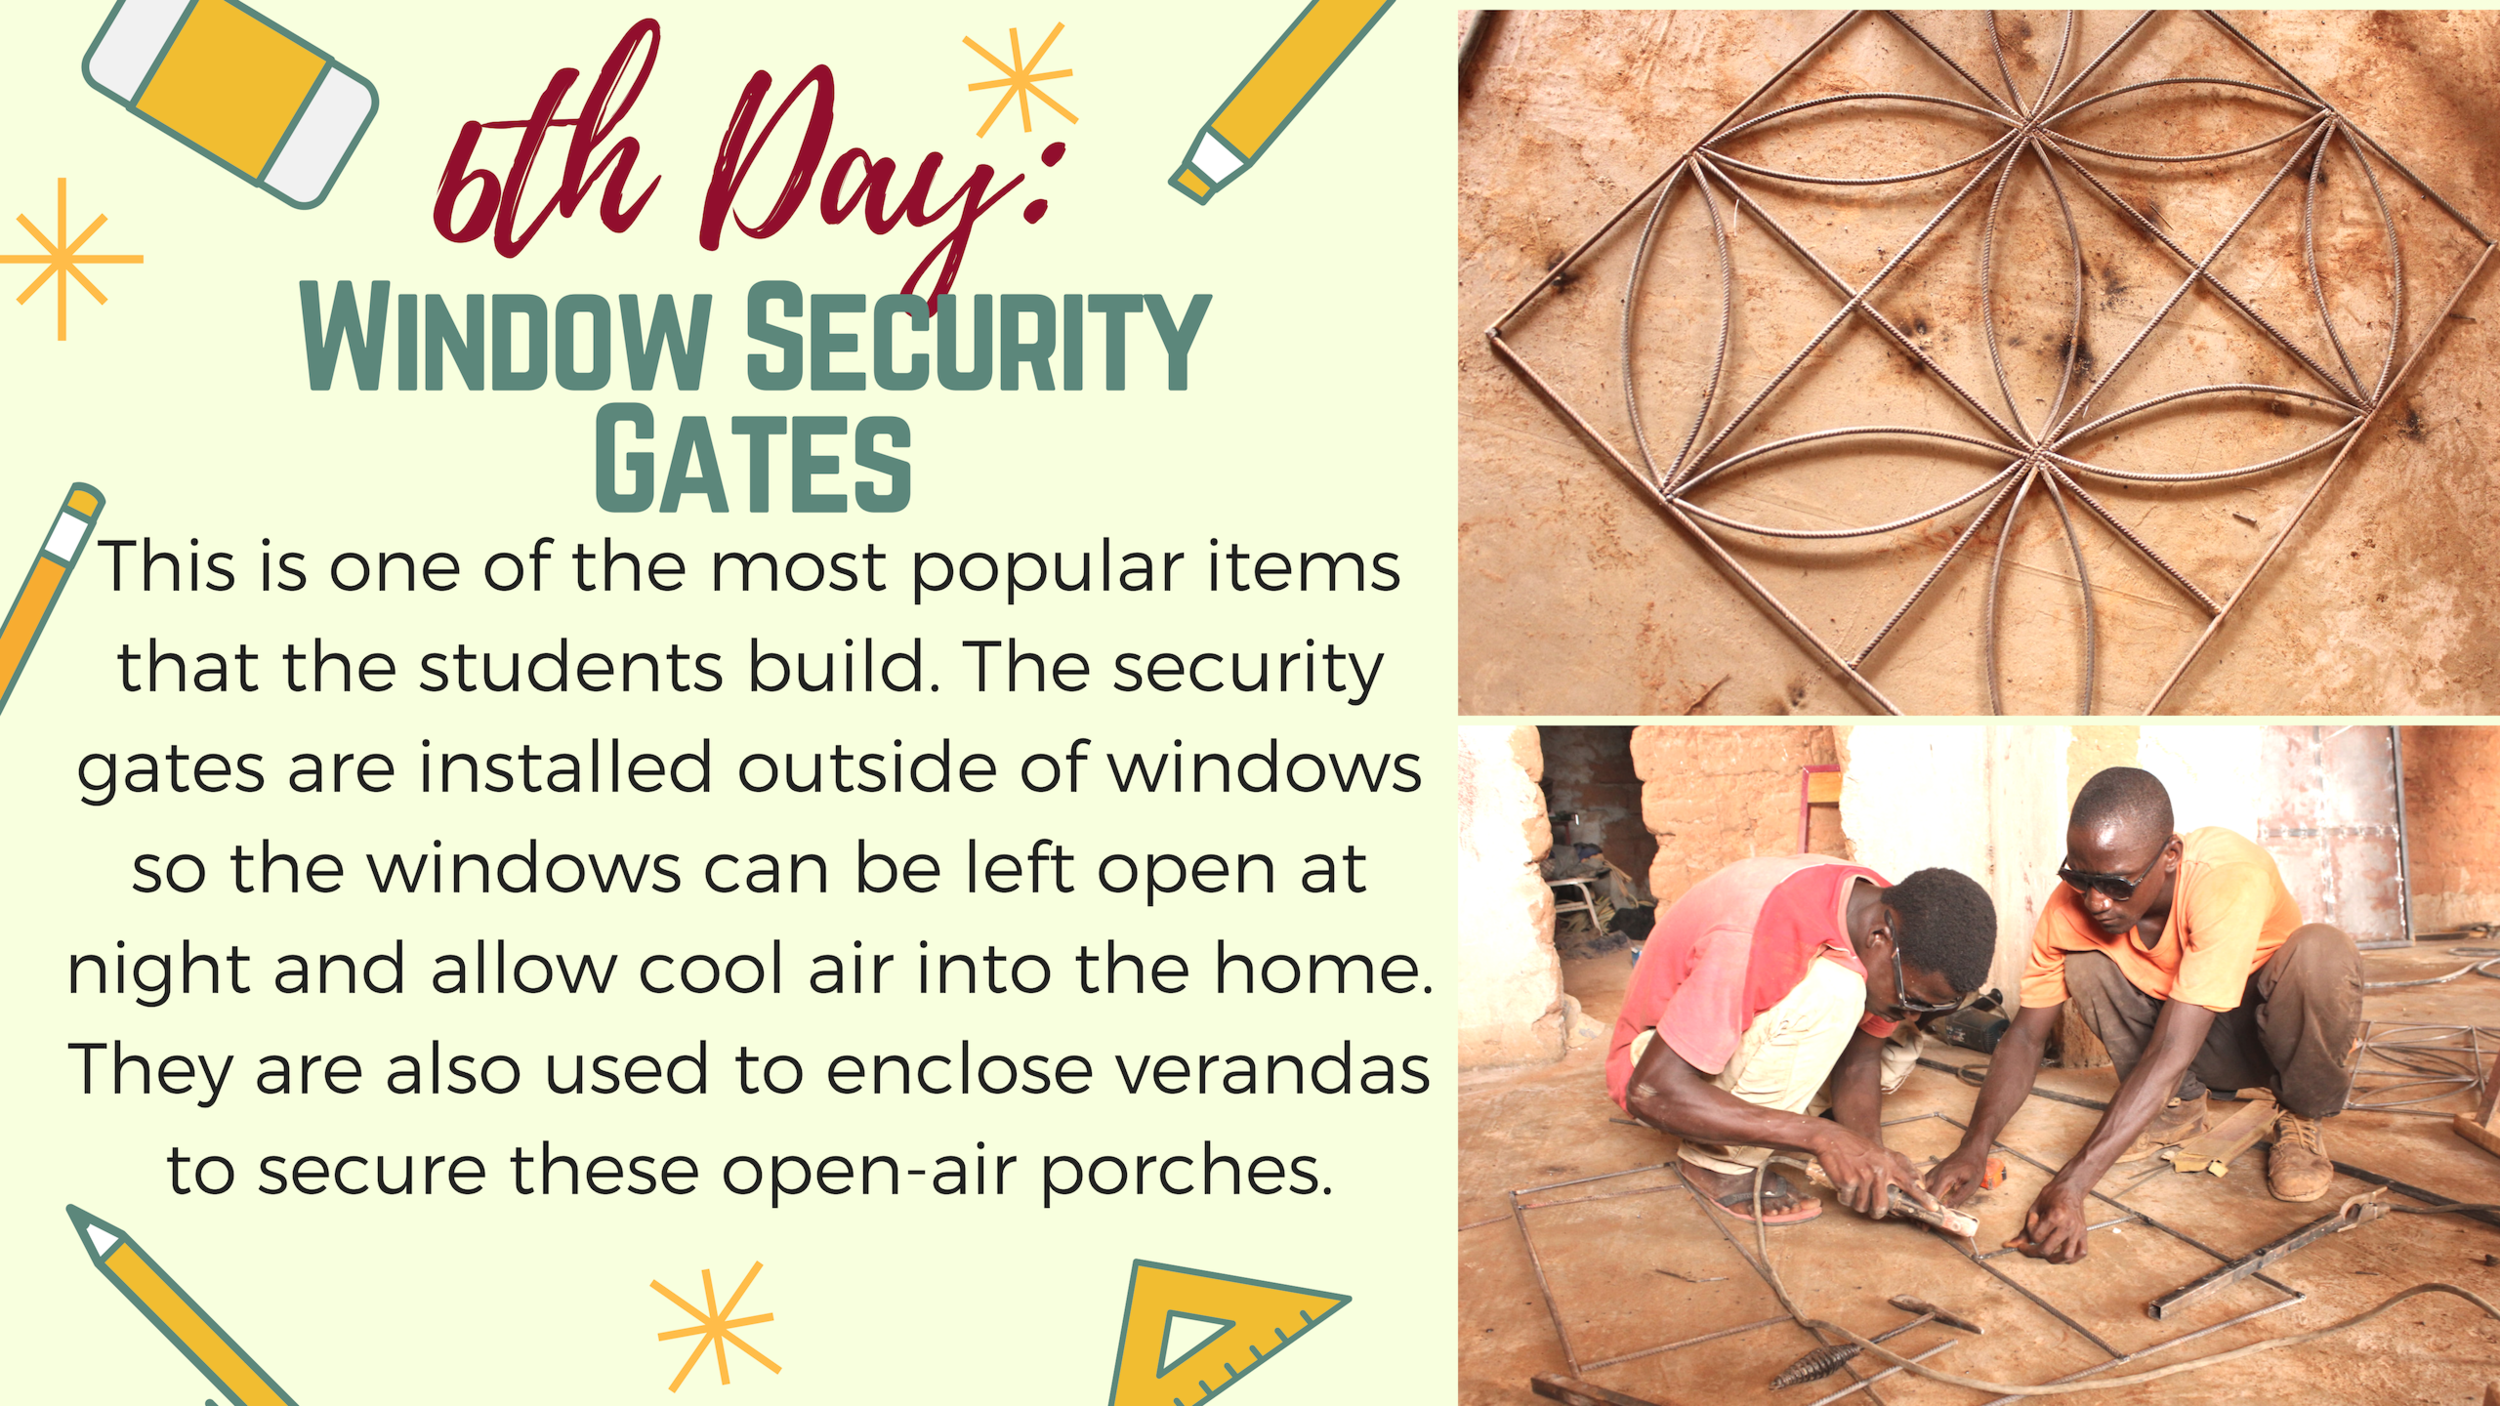 6th day window security gates.png